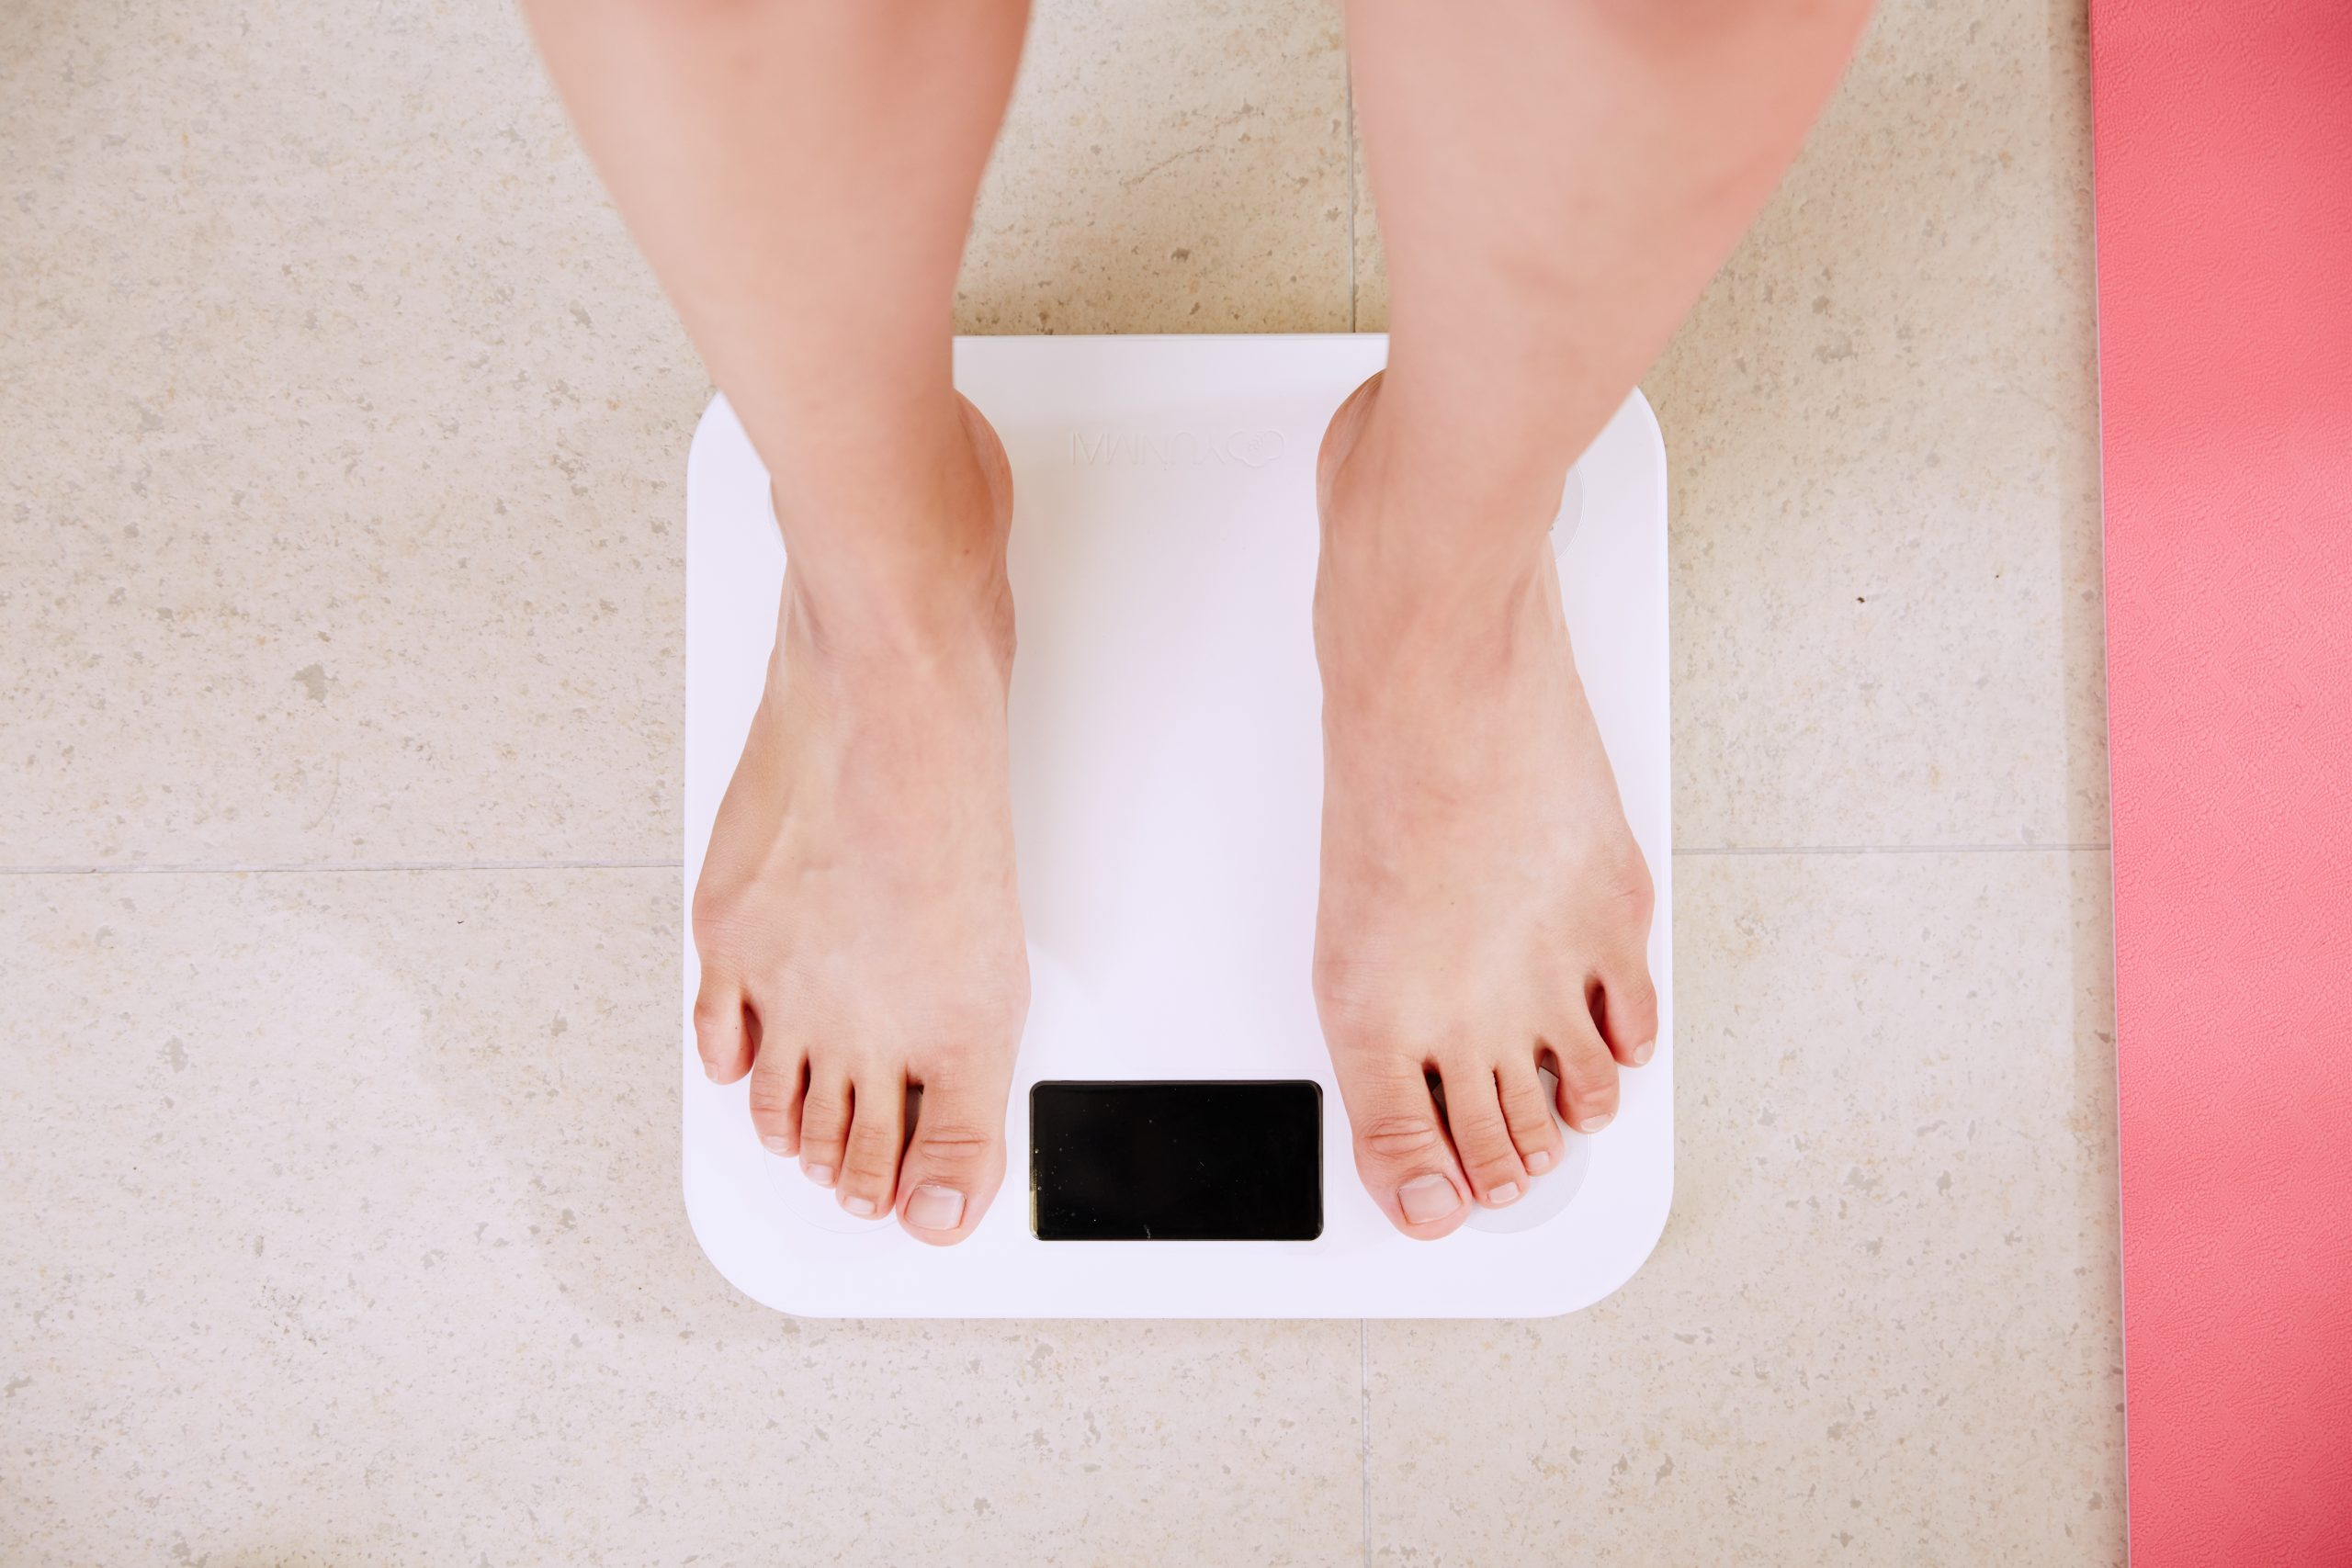 weight gain, pregnancy, scale, feet, first trimester of pregnancy